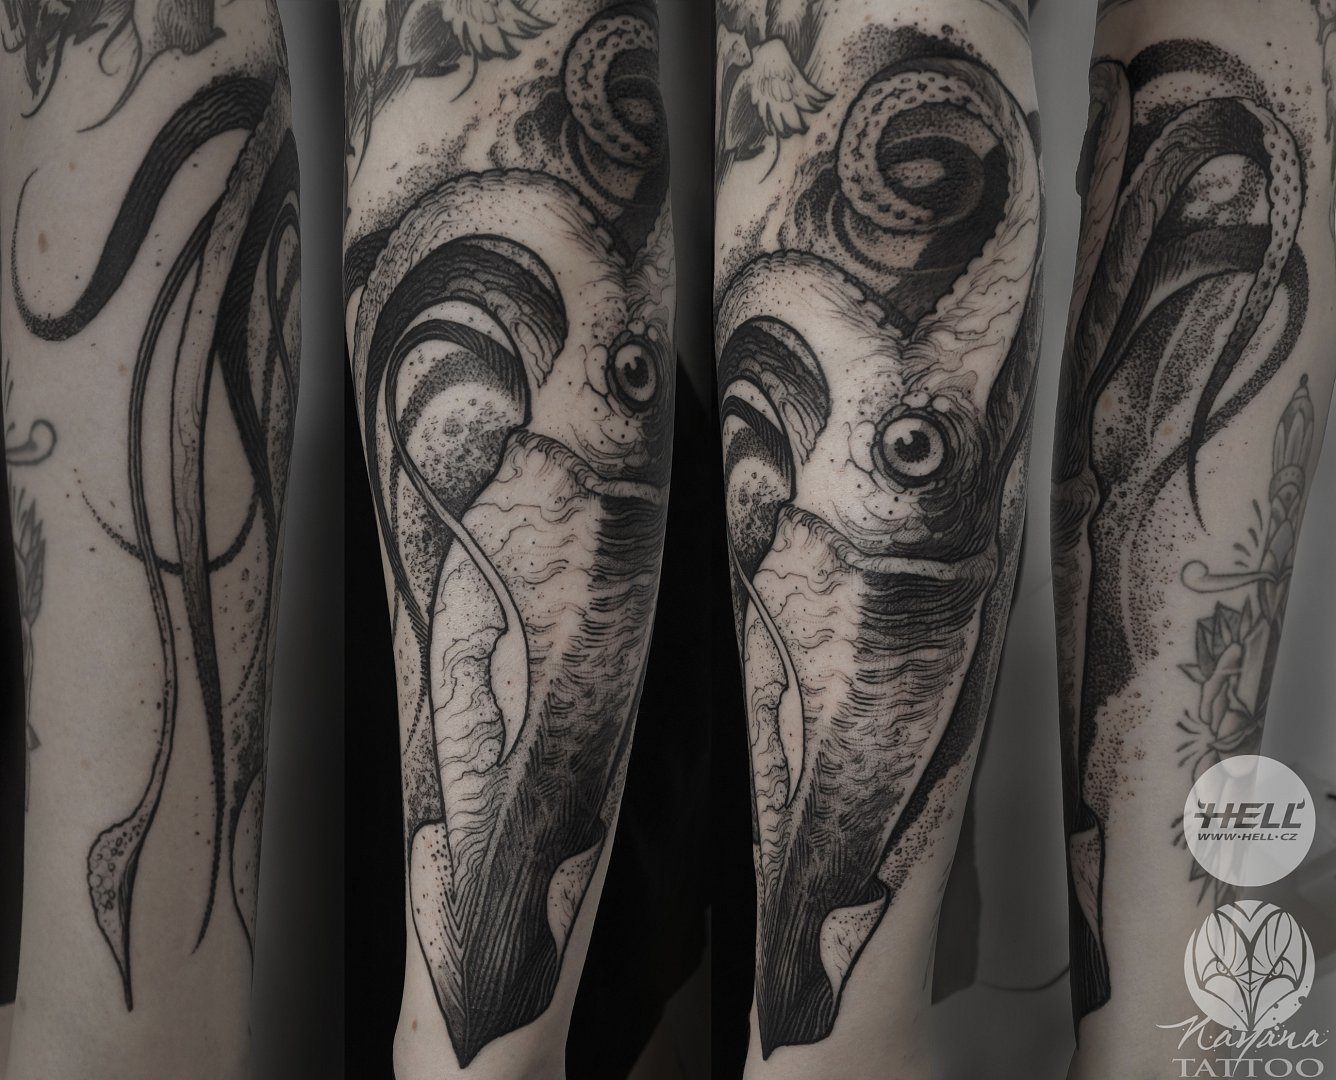 giant-squid-freehand-nayana-tattoo